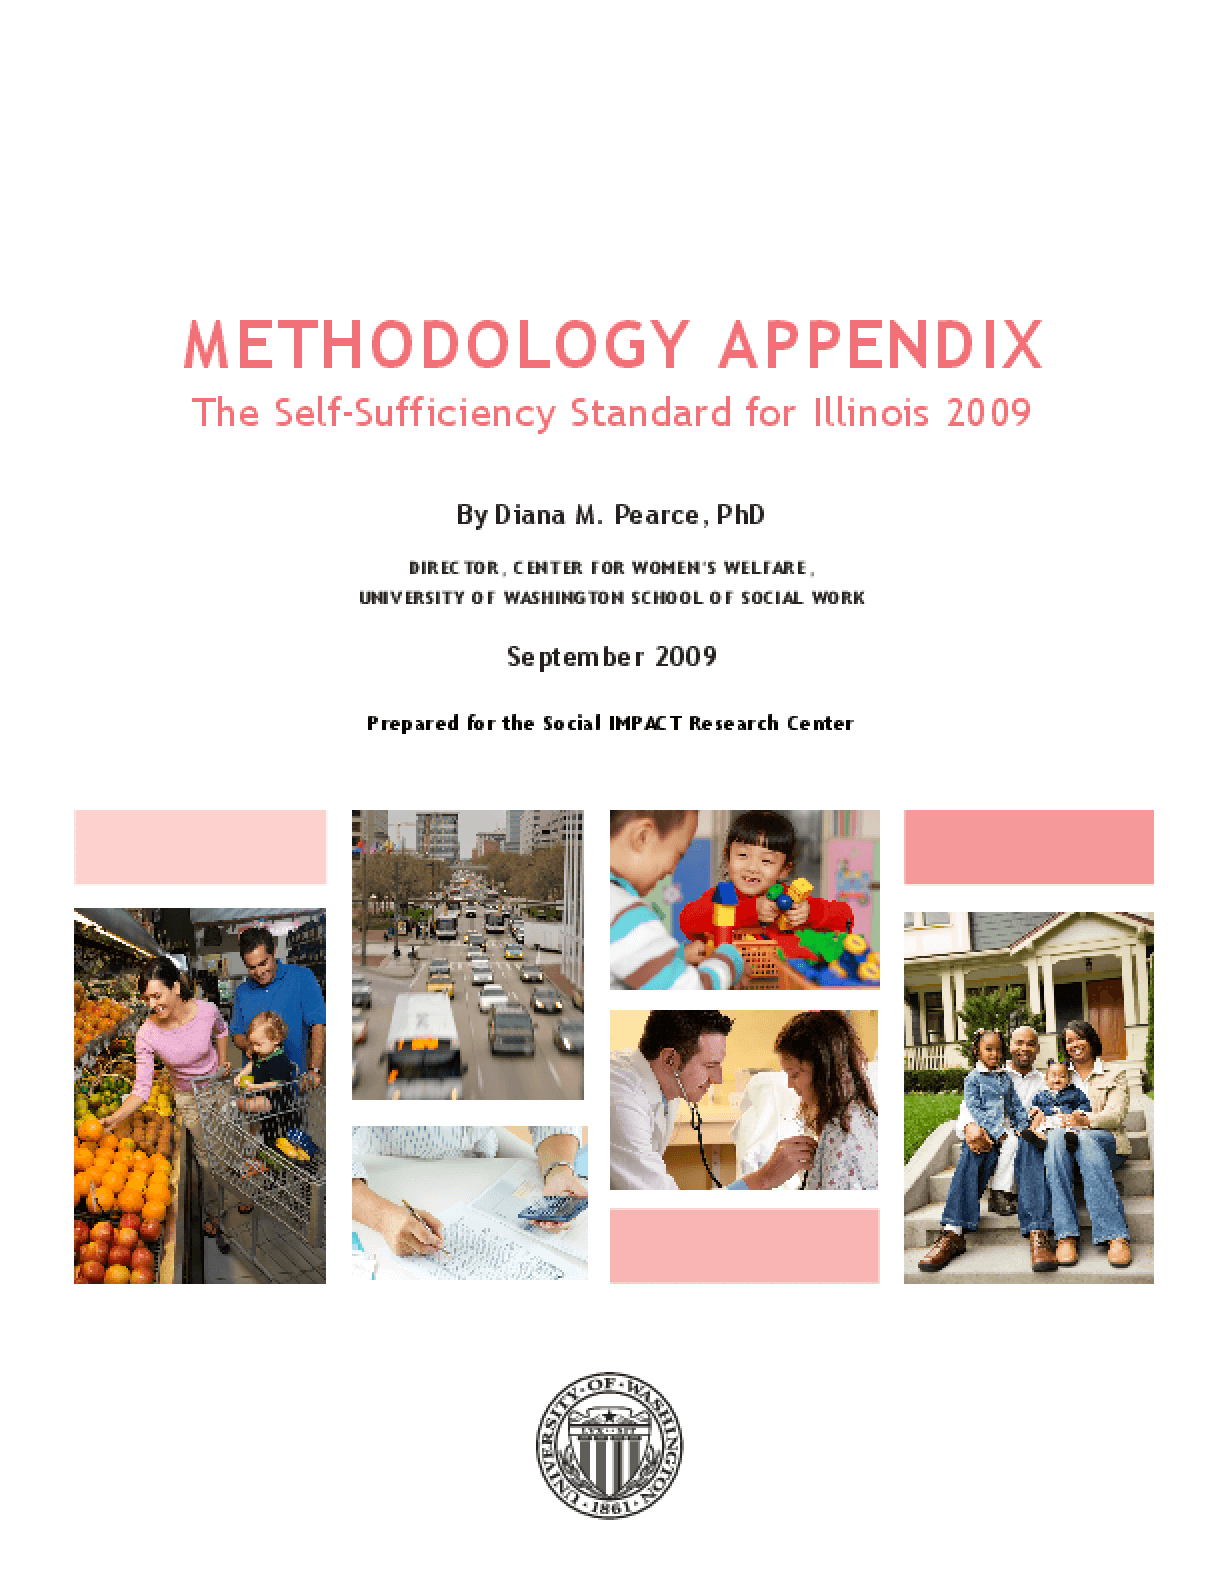 The Self-Sufficiency Standard for Illinois: Methodology Appendix